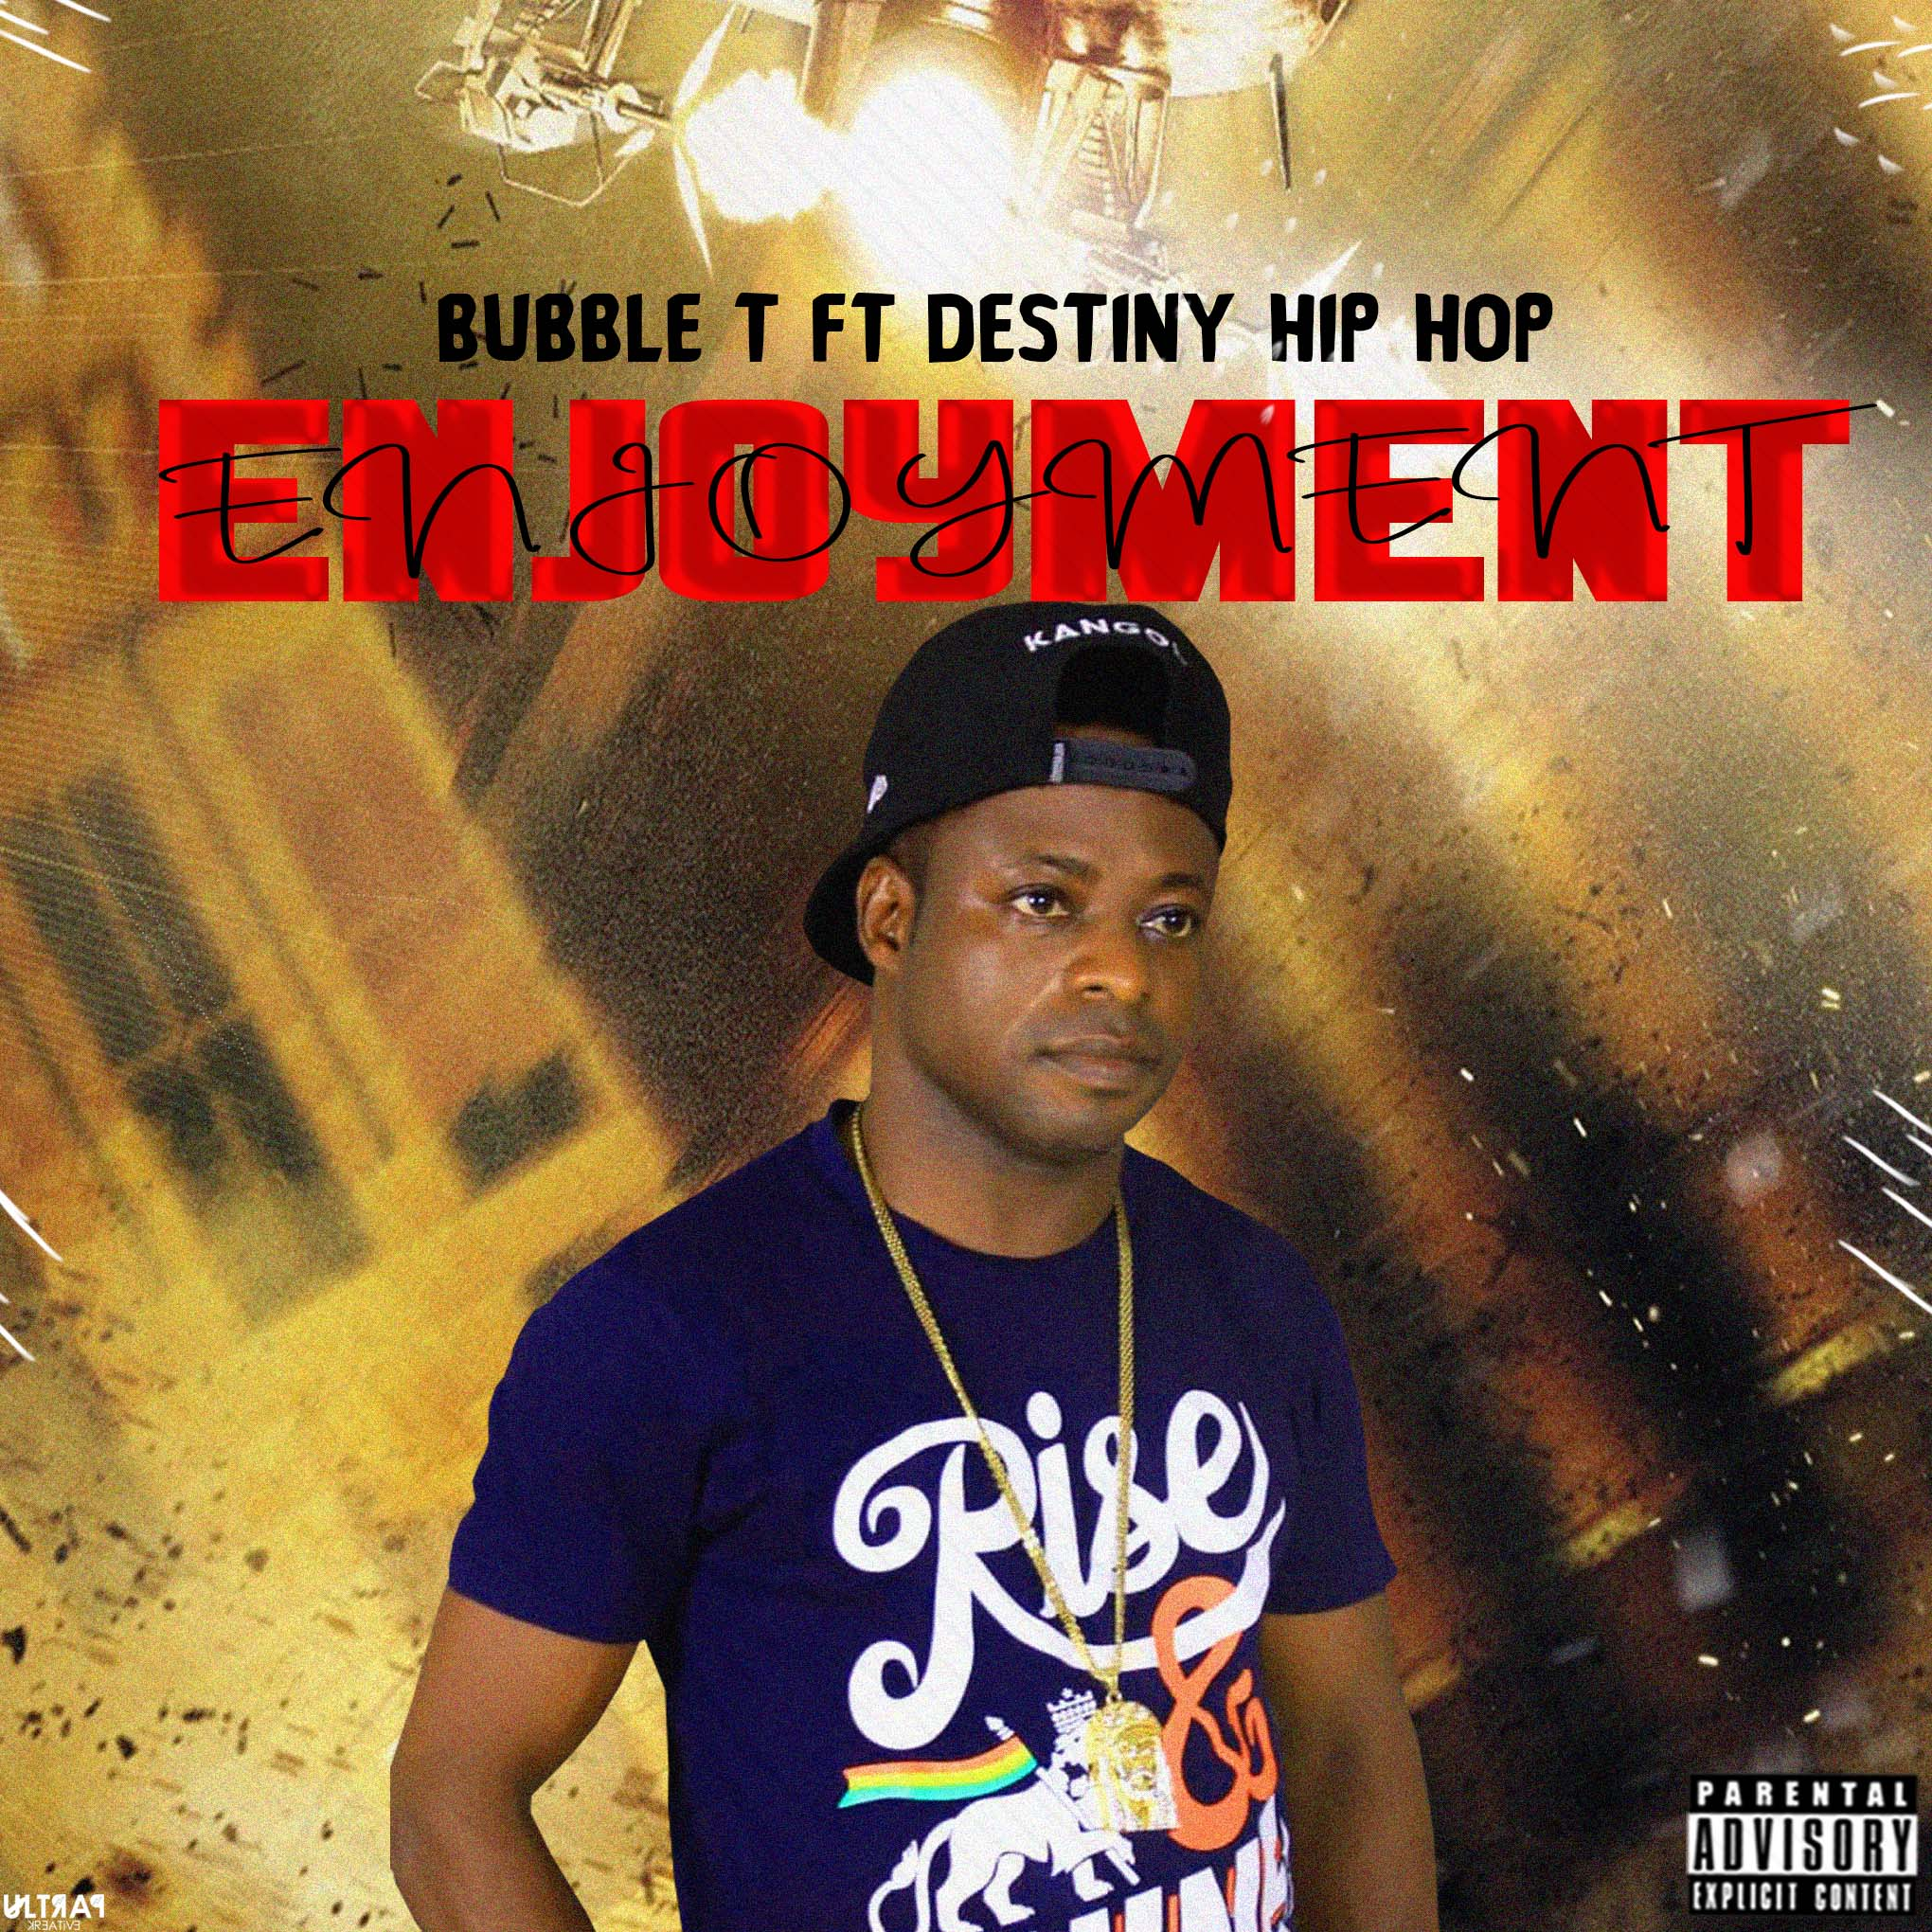 Bubble T Ft Destiny Hip Hop - Enjoyment